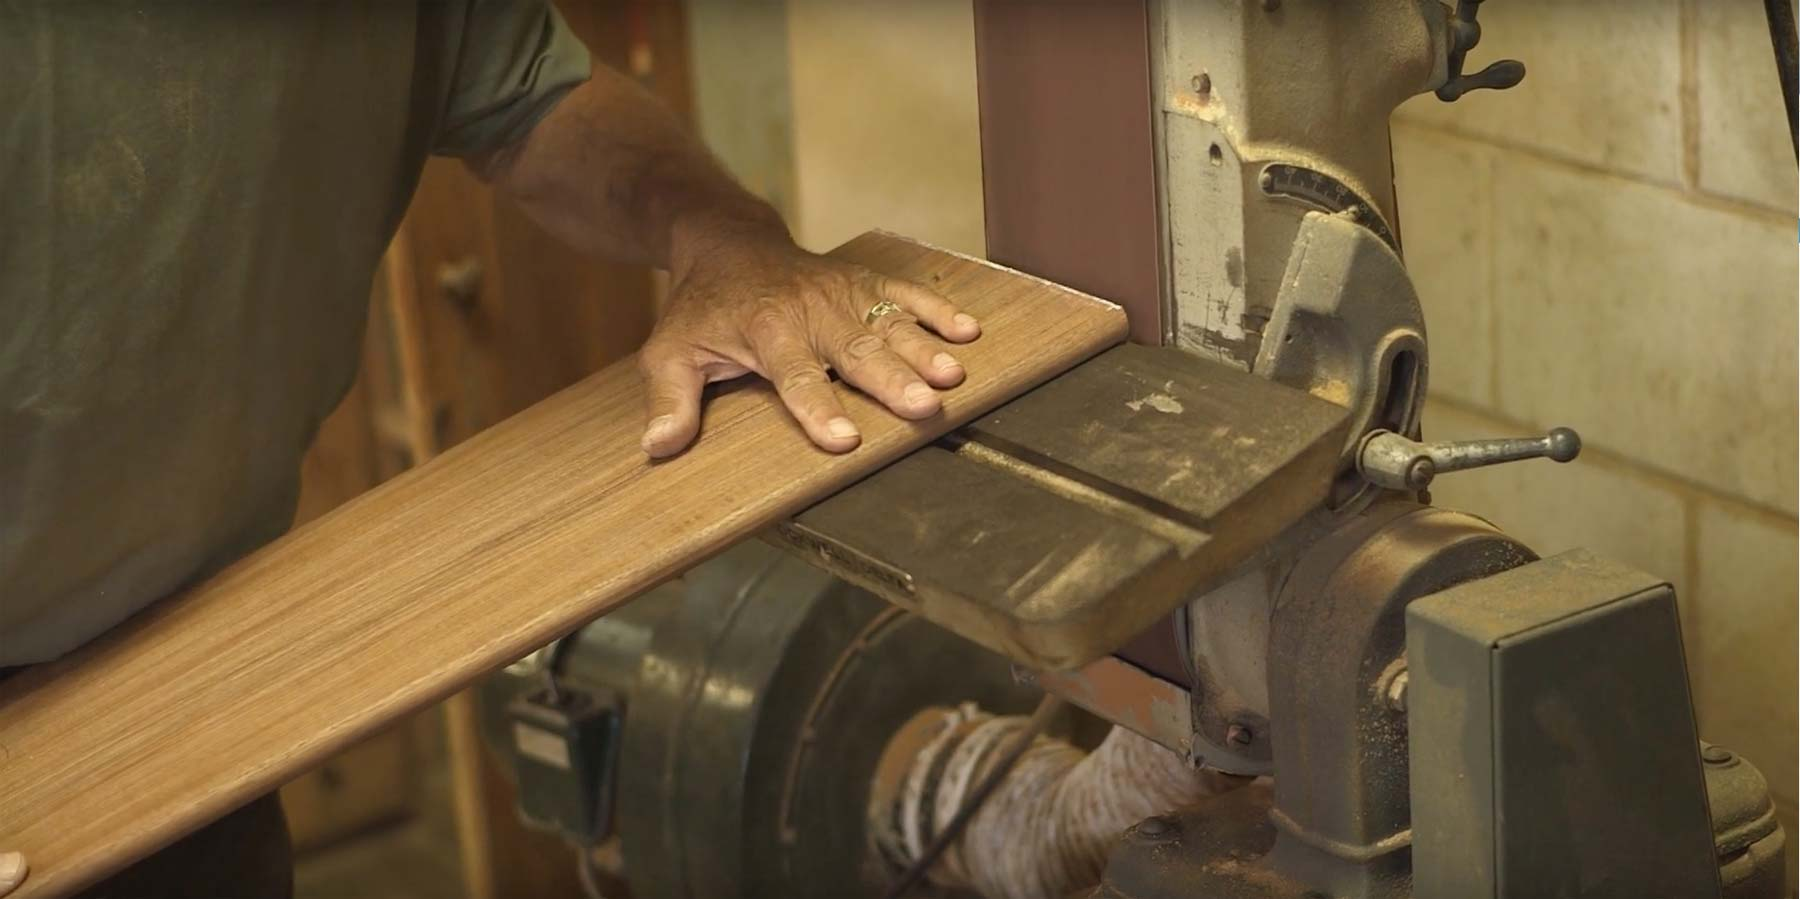 man's hands working through putting wood under a saw